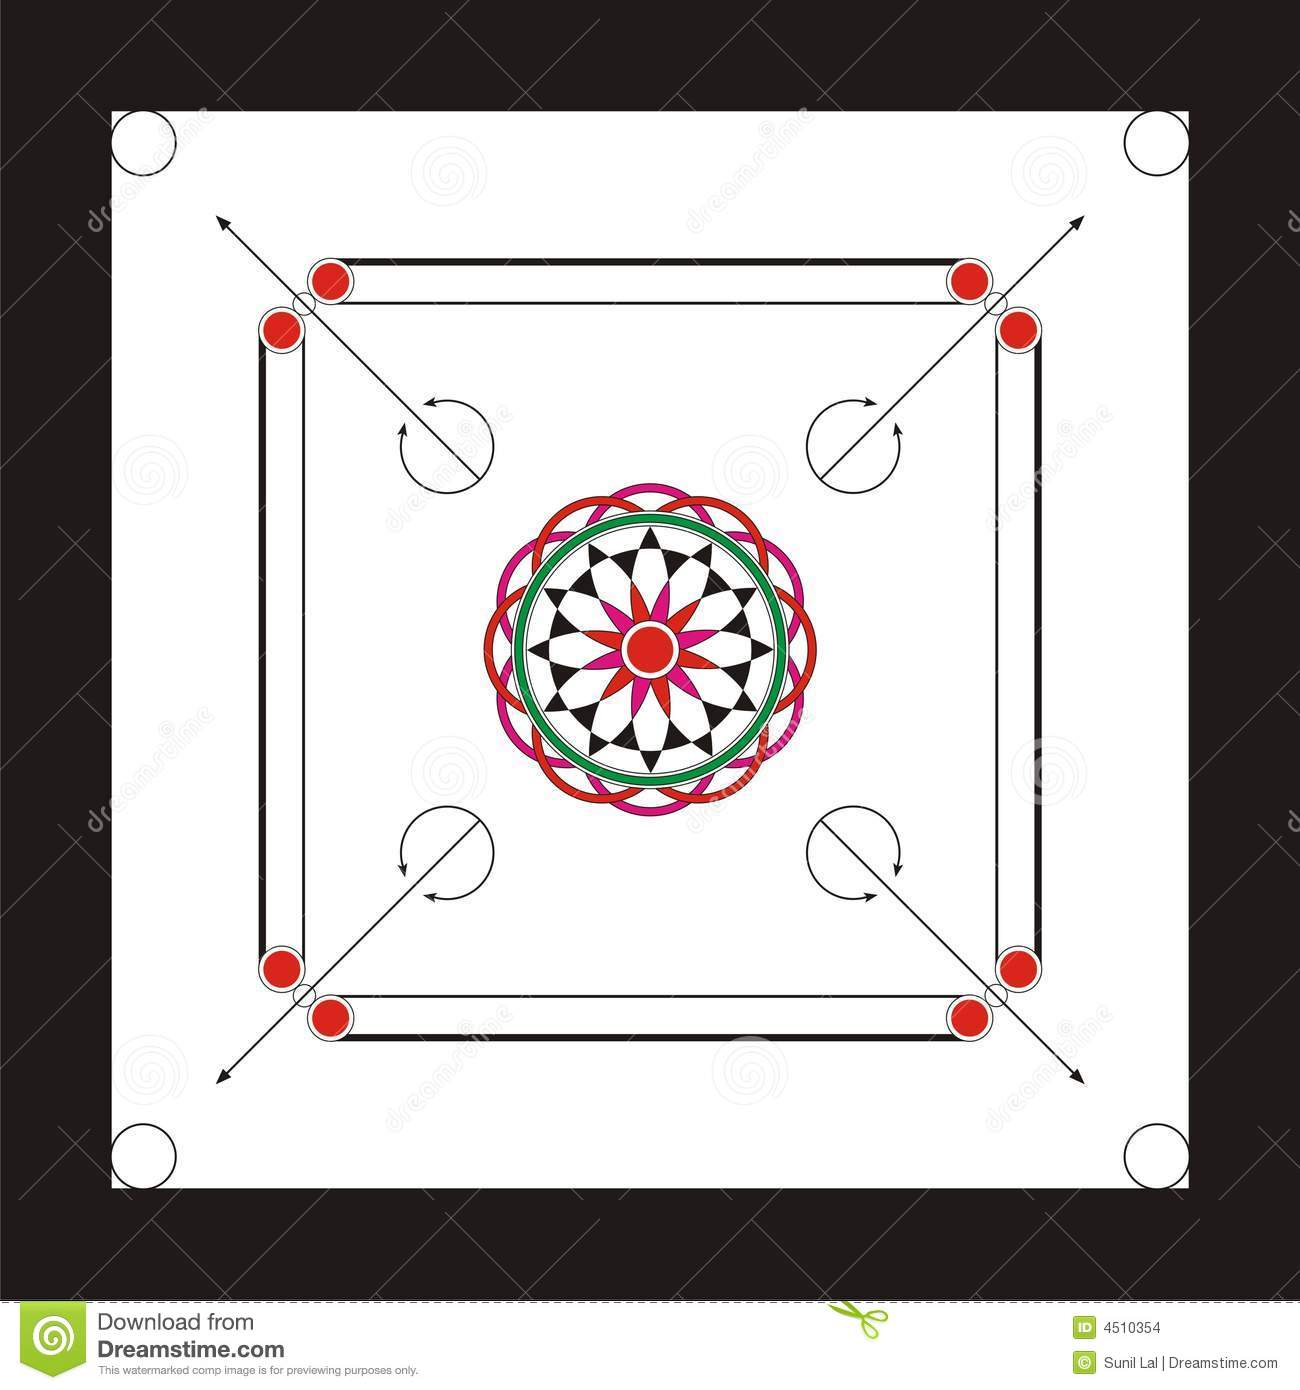 Carrom board clipart.